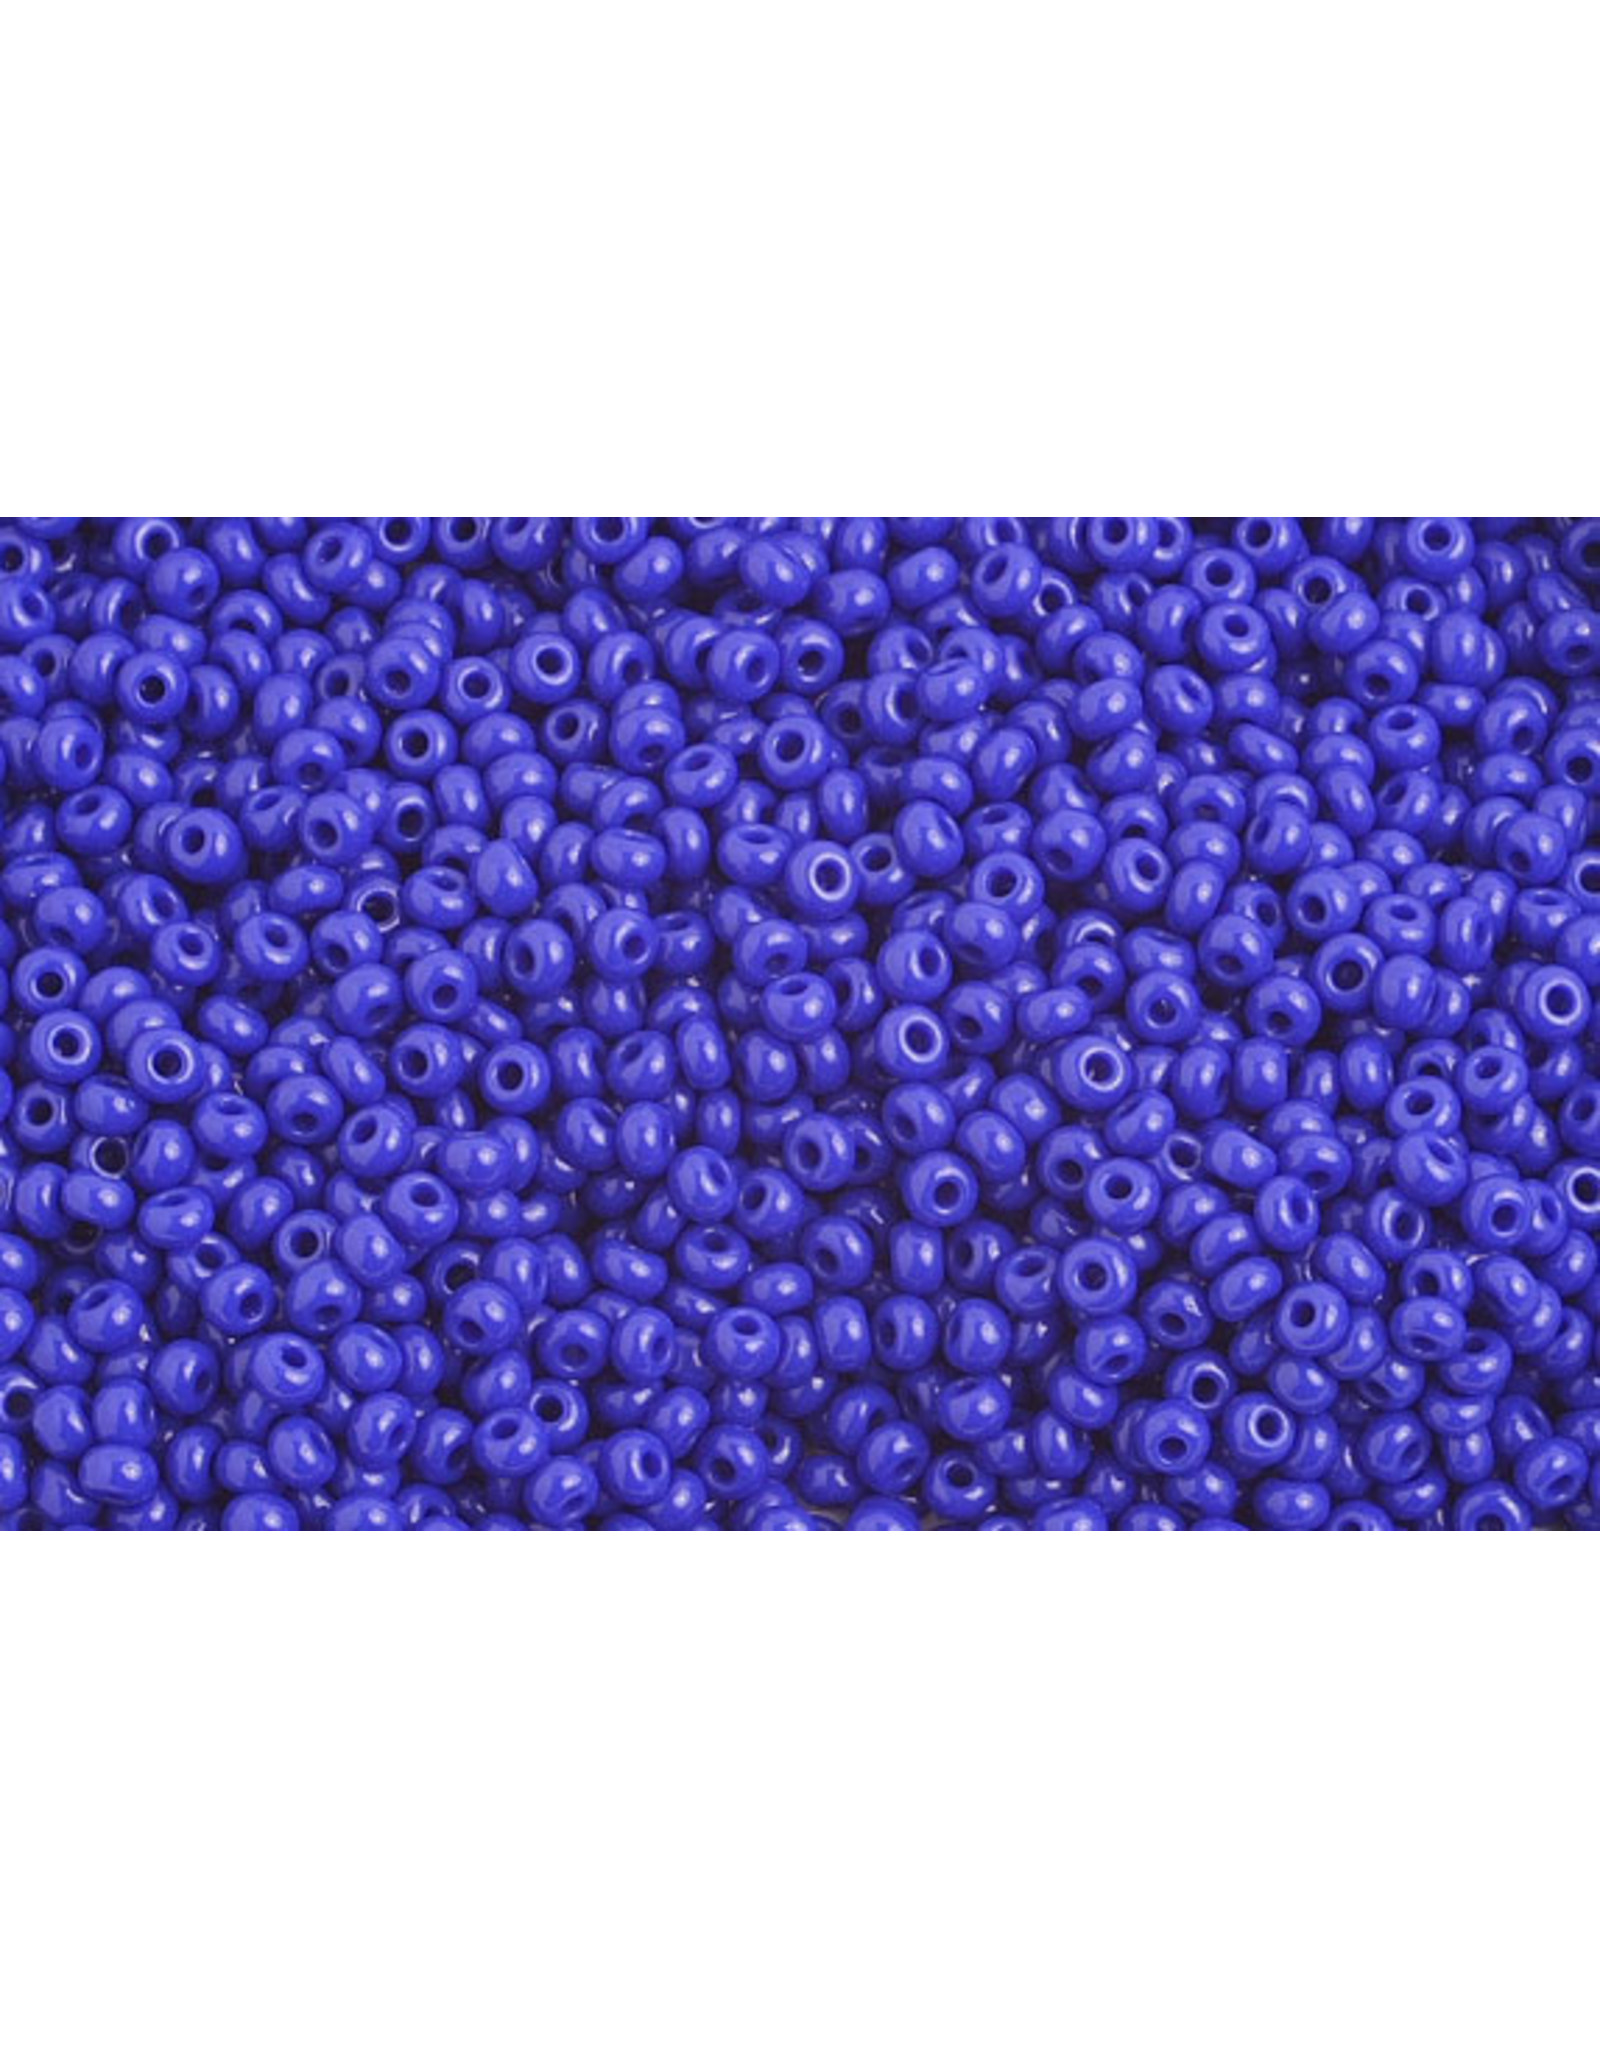 Czech 1044 10   Seed 20g Opaque Royal Blue